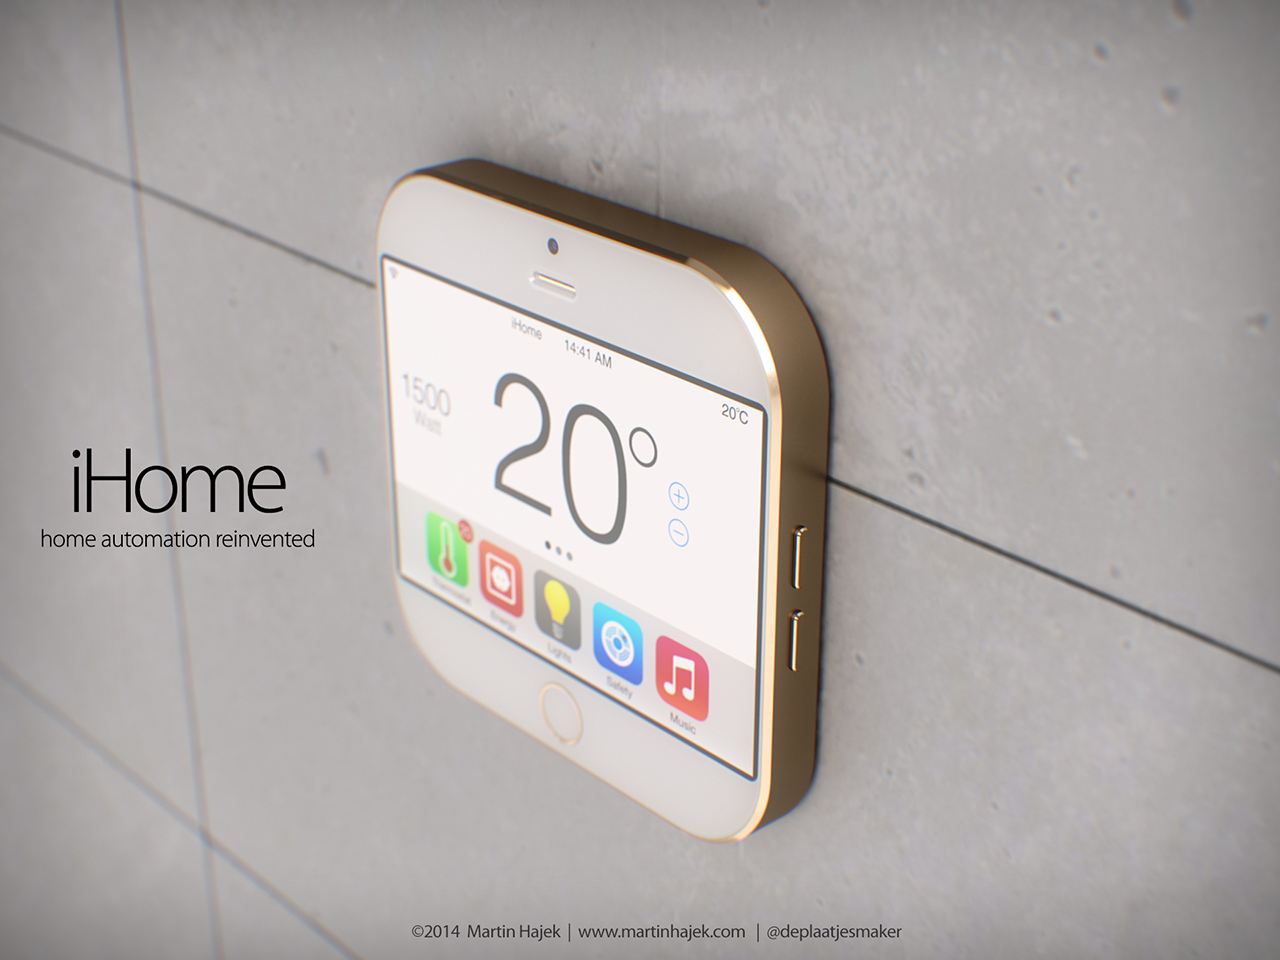 Wallpaper Iphone 3d Touch Apple Ihome Concept Deals With Home Automation In Small